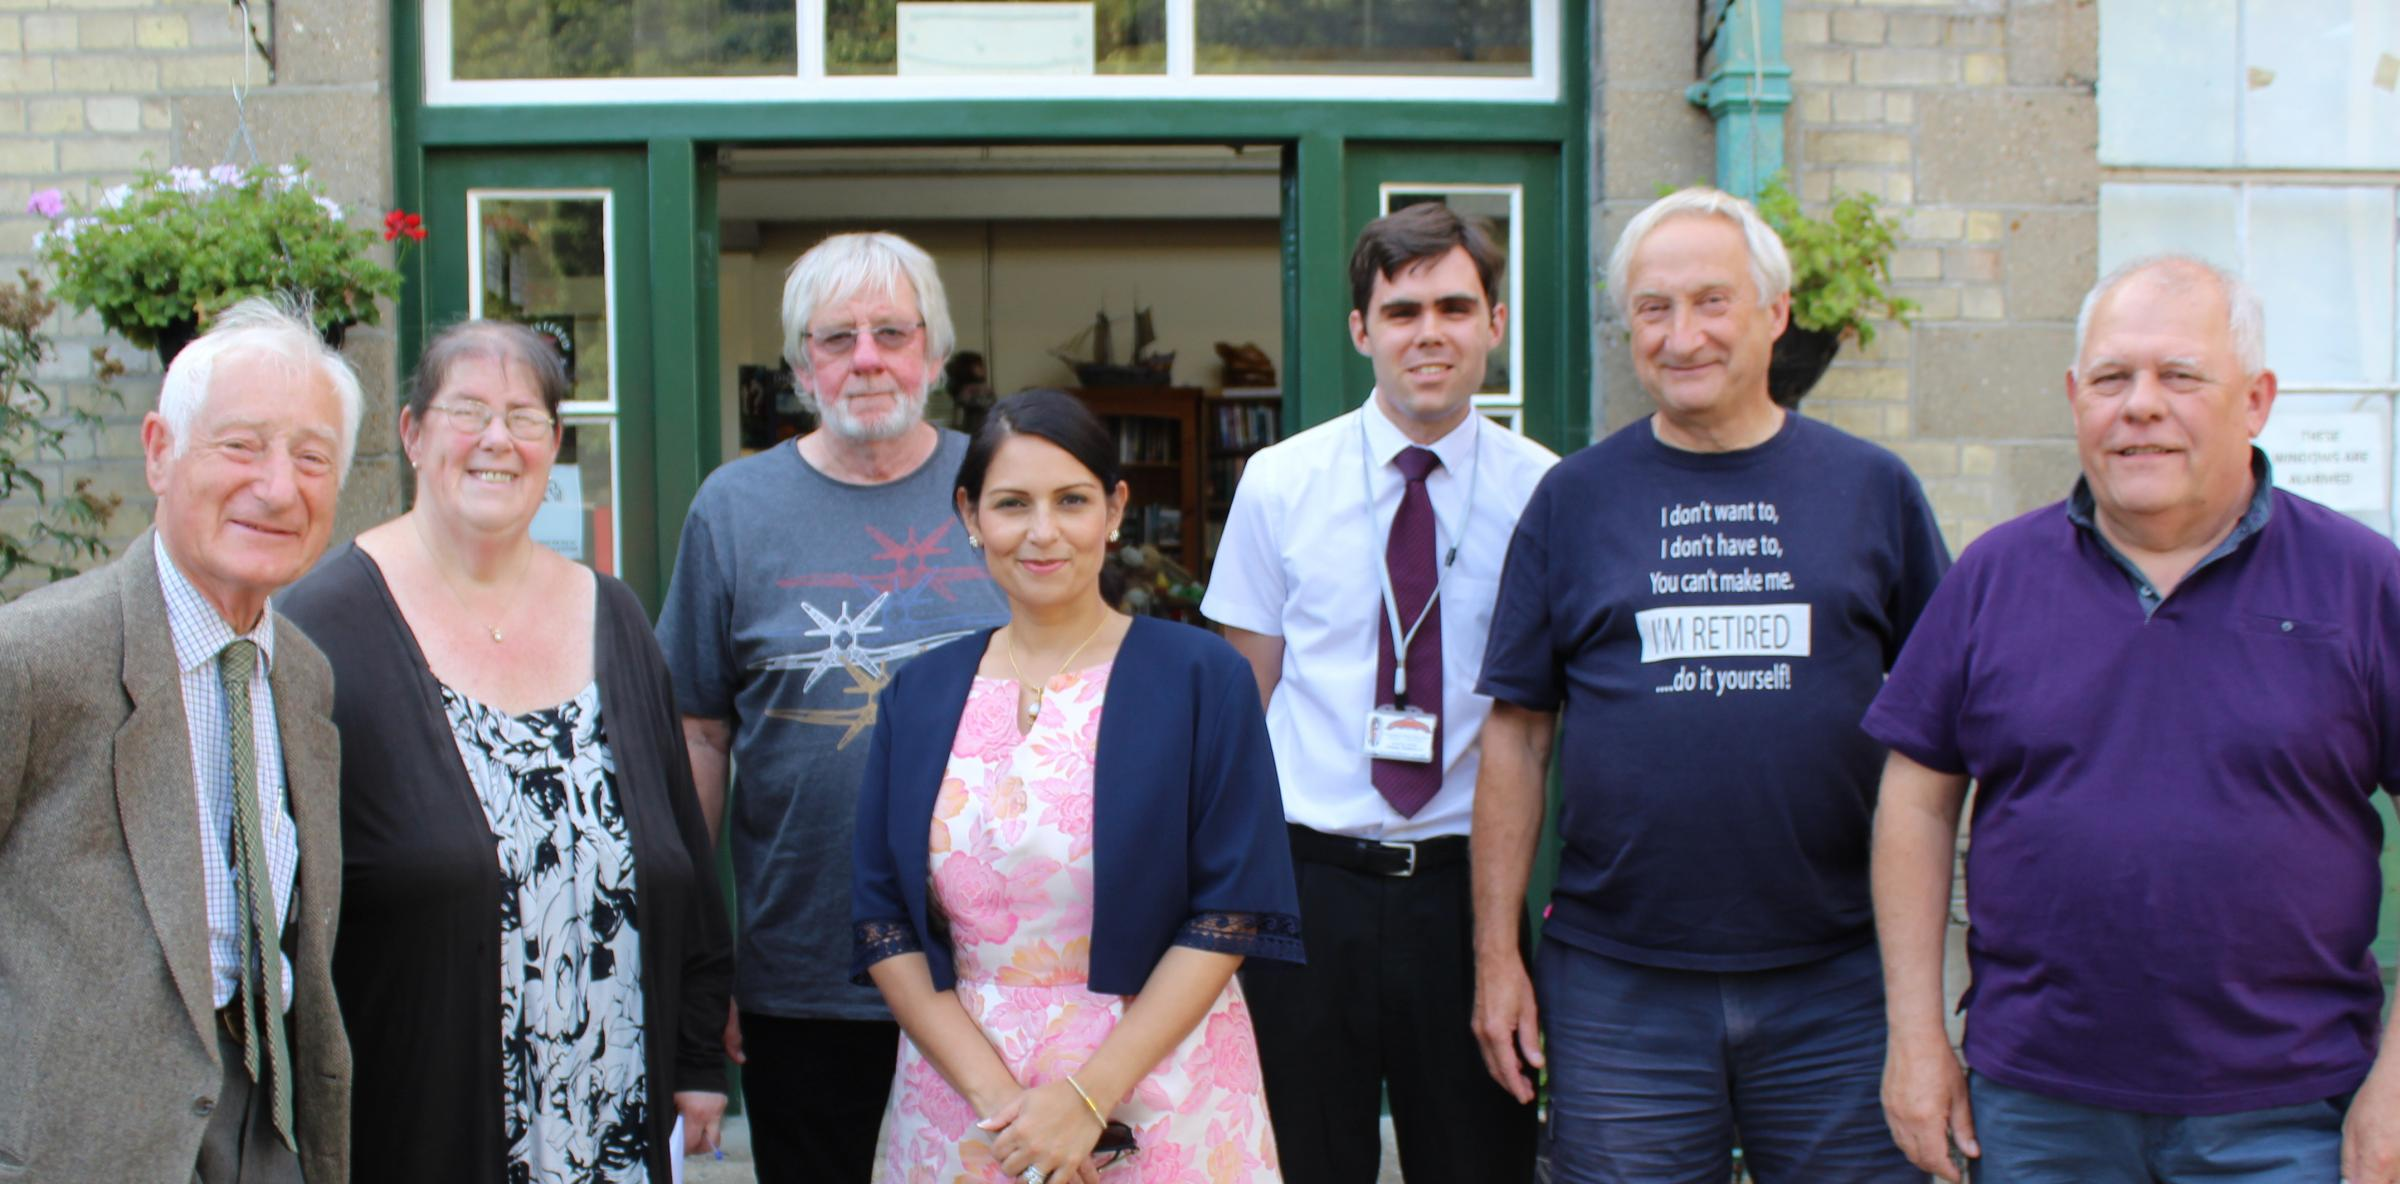 MUSEUM SUPPORTER: Priti Patel's last visit to the Museum of Power in August 2019